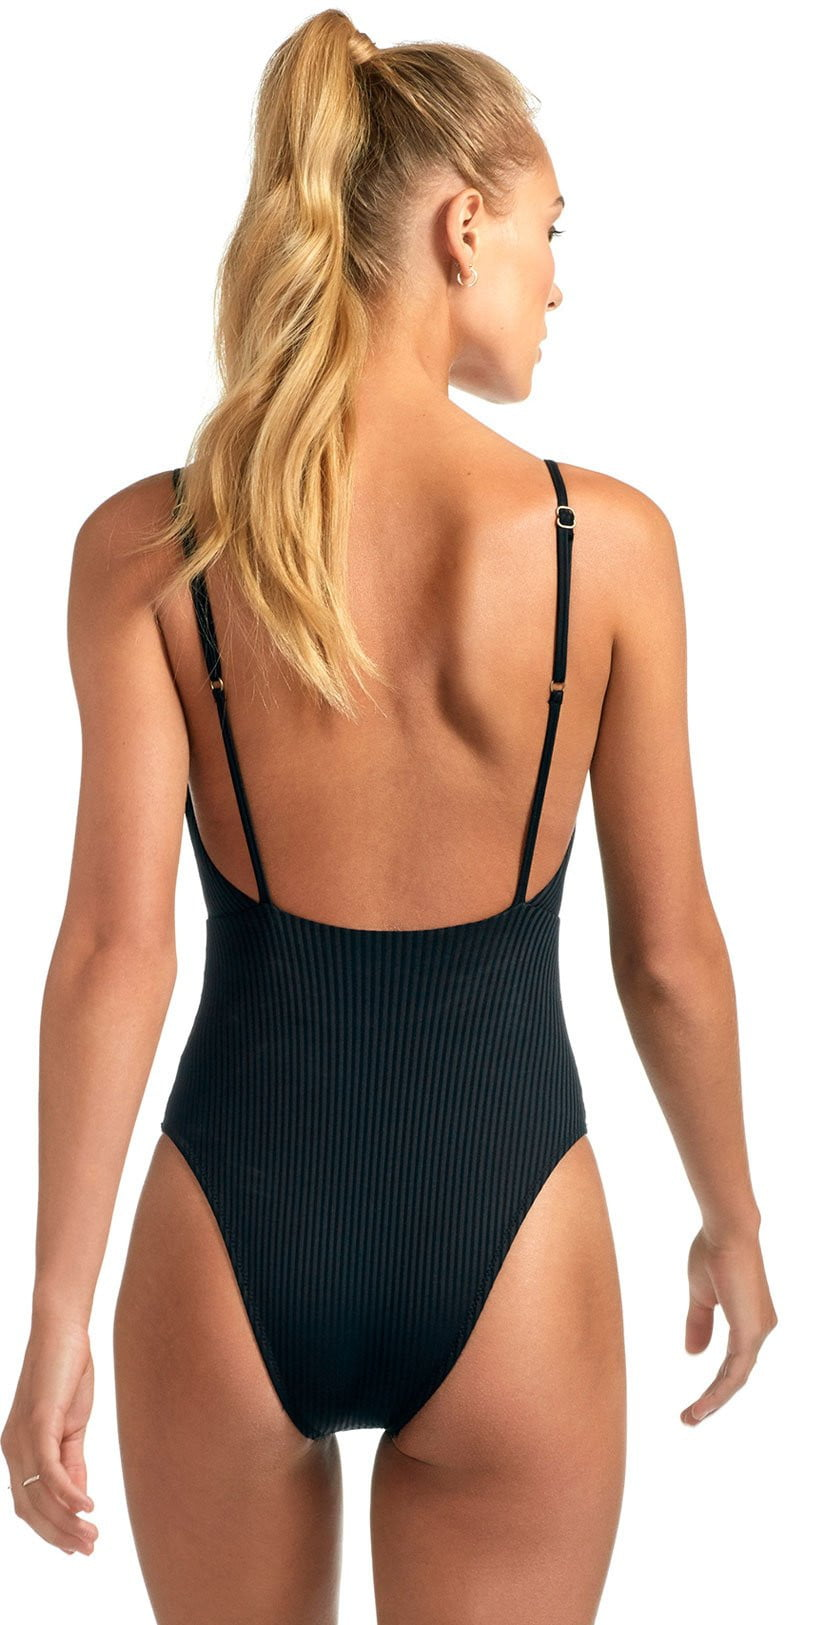 Vitamin A Eco Rib Alma Bodysuit In Black 931M ERB & 931MF ERB: